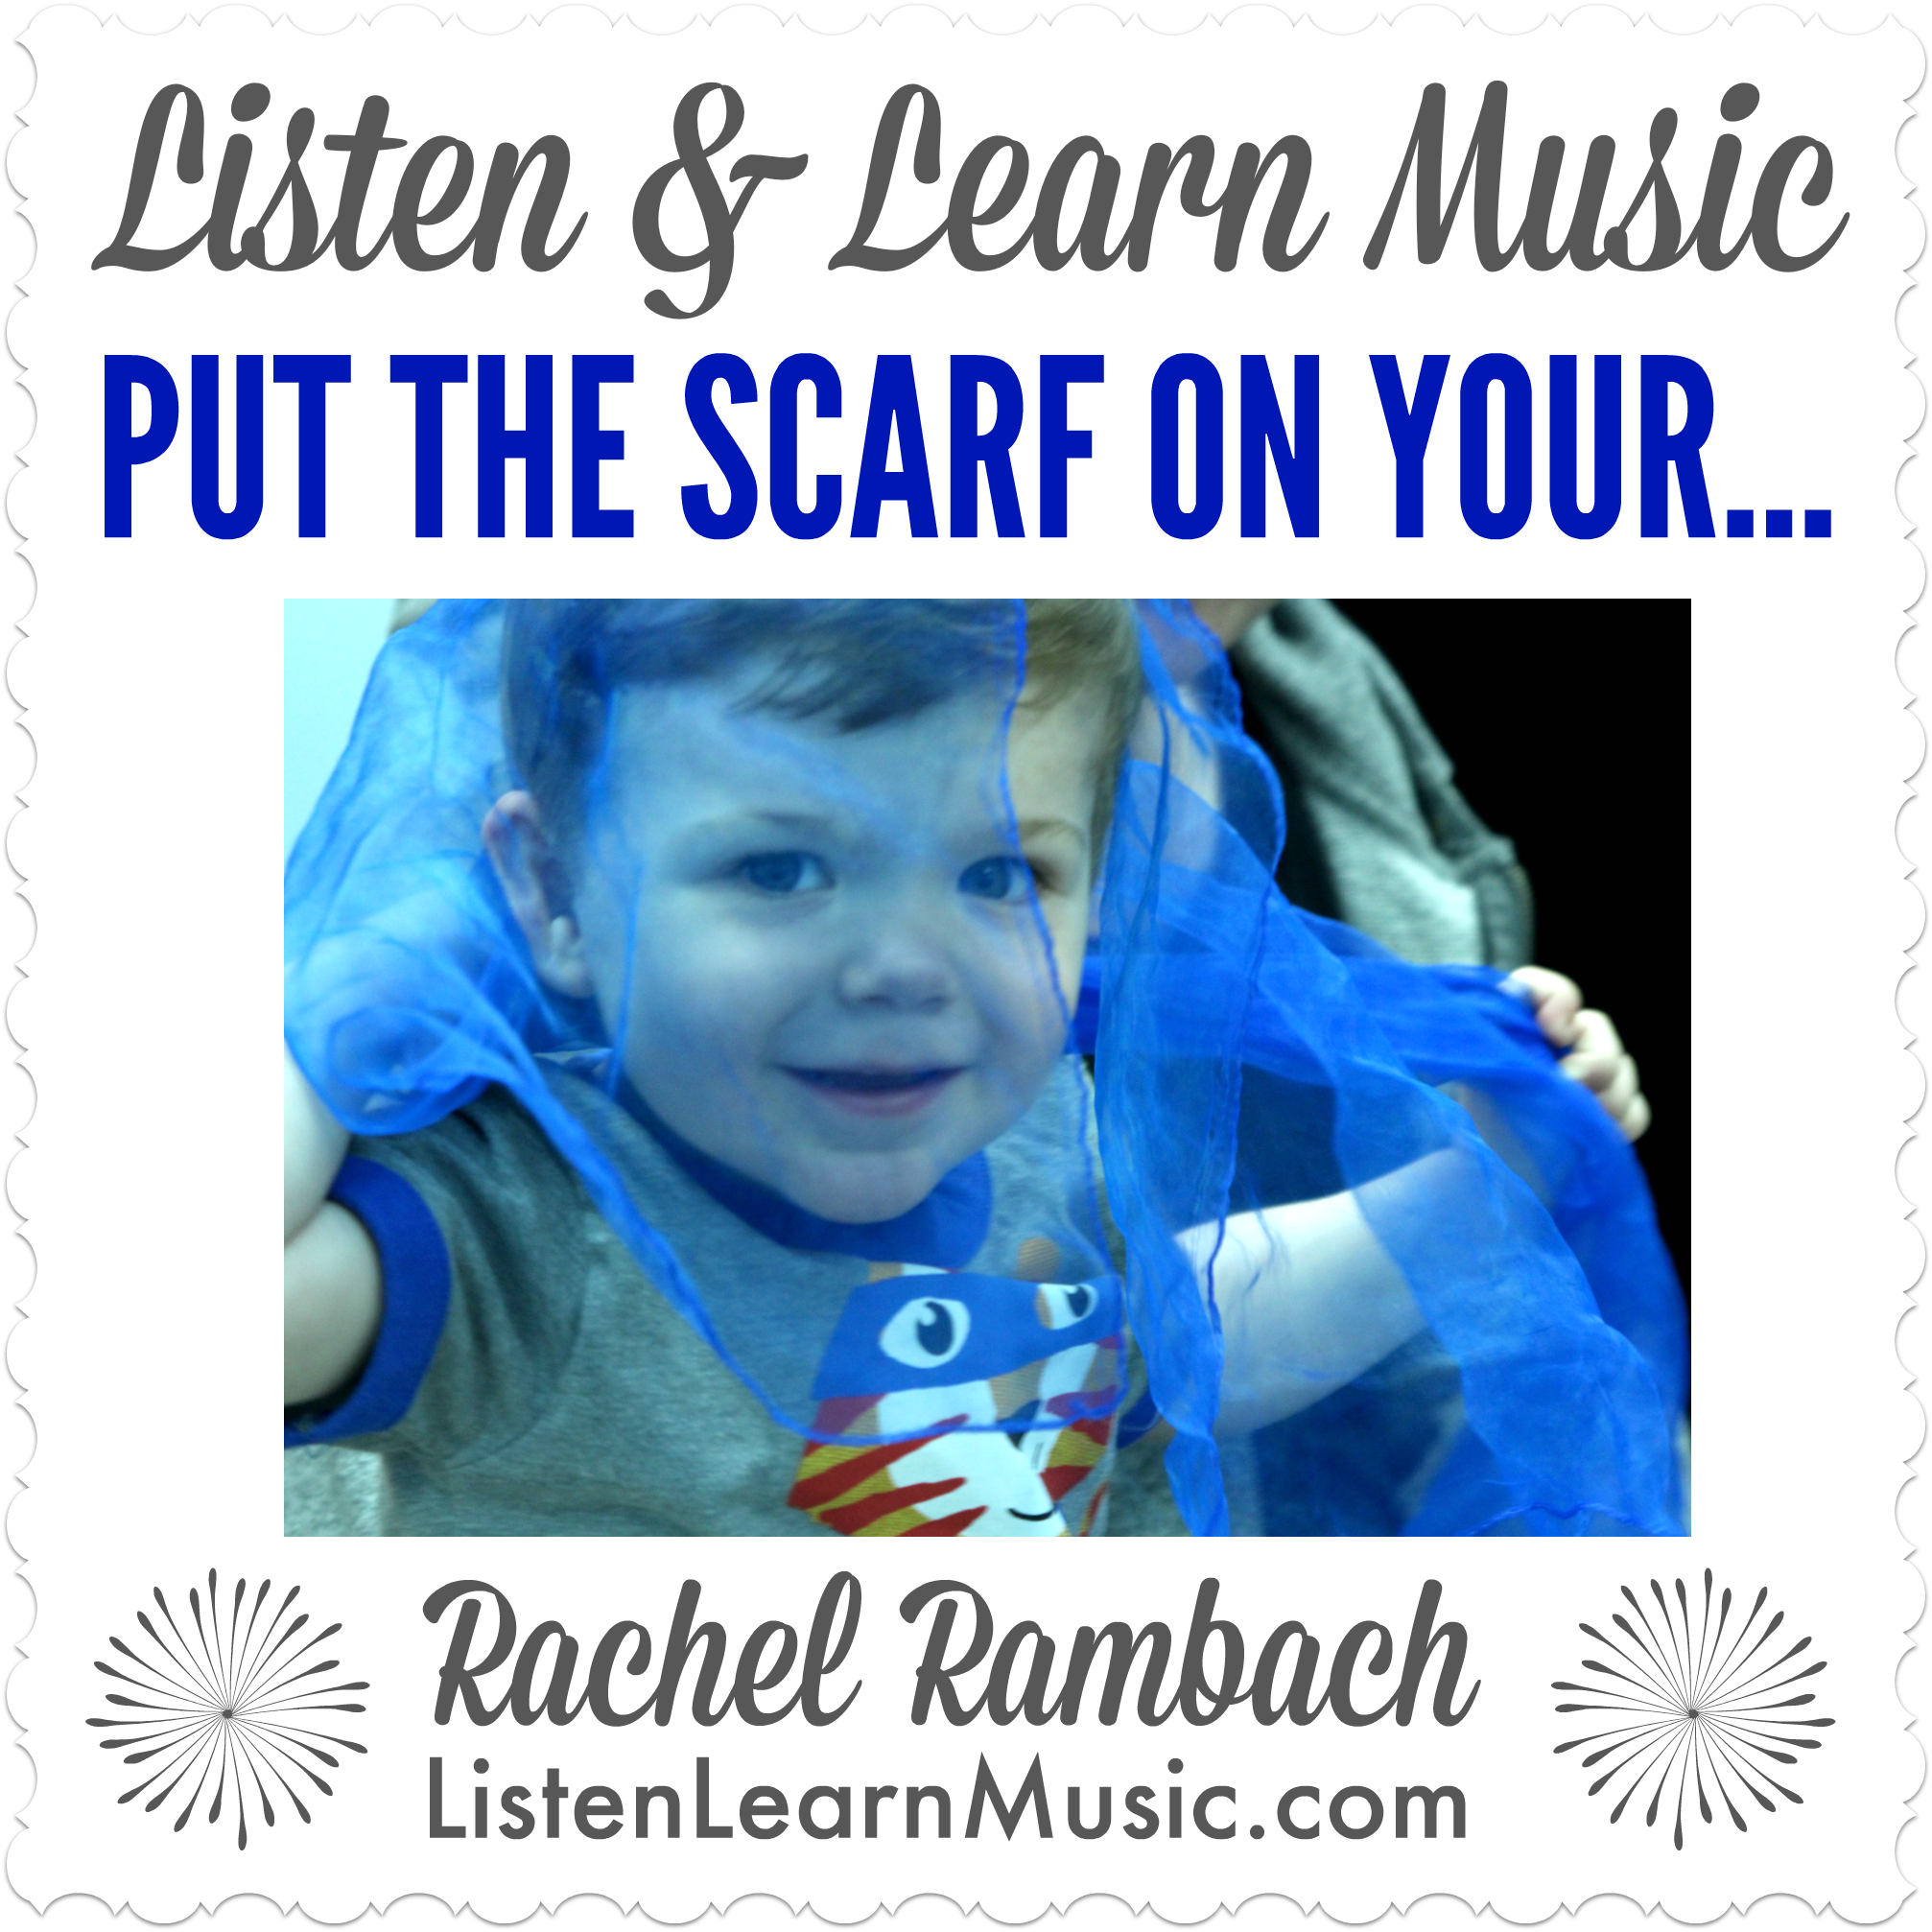 Put the Scarf On Your... | Listen & Learn Music